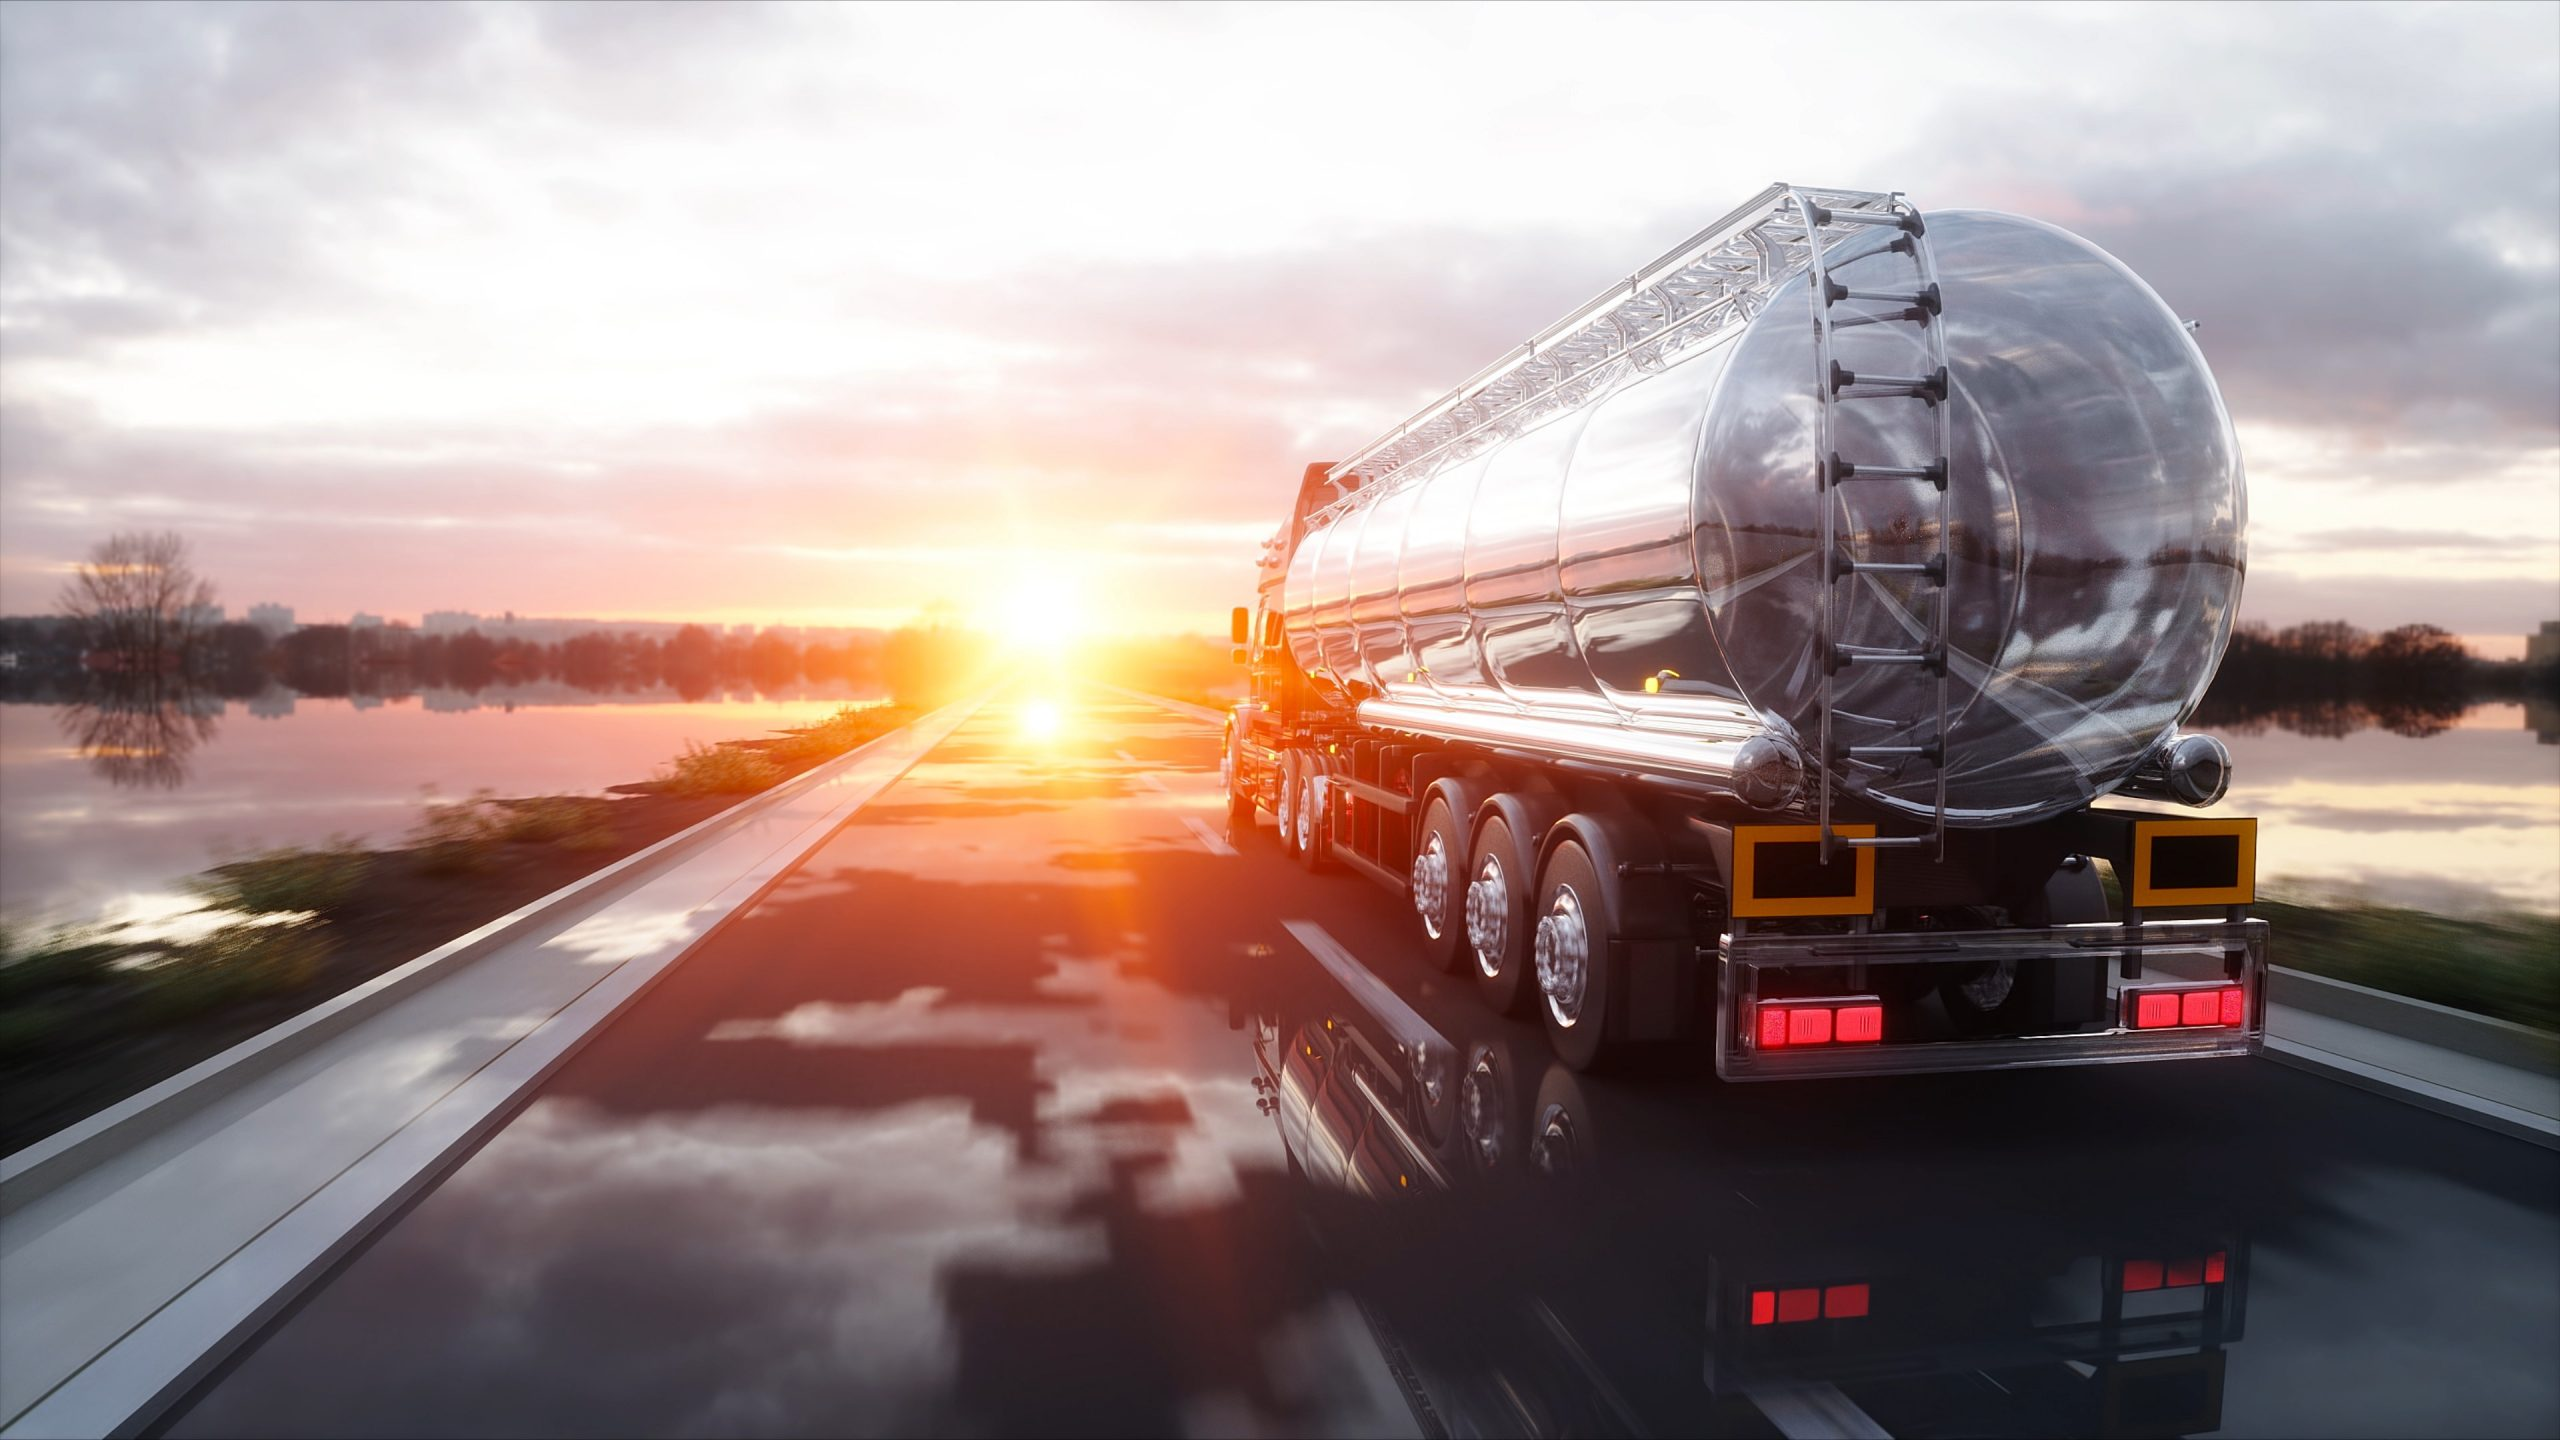 Gas or oil truck on highway